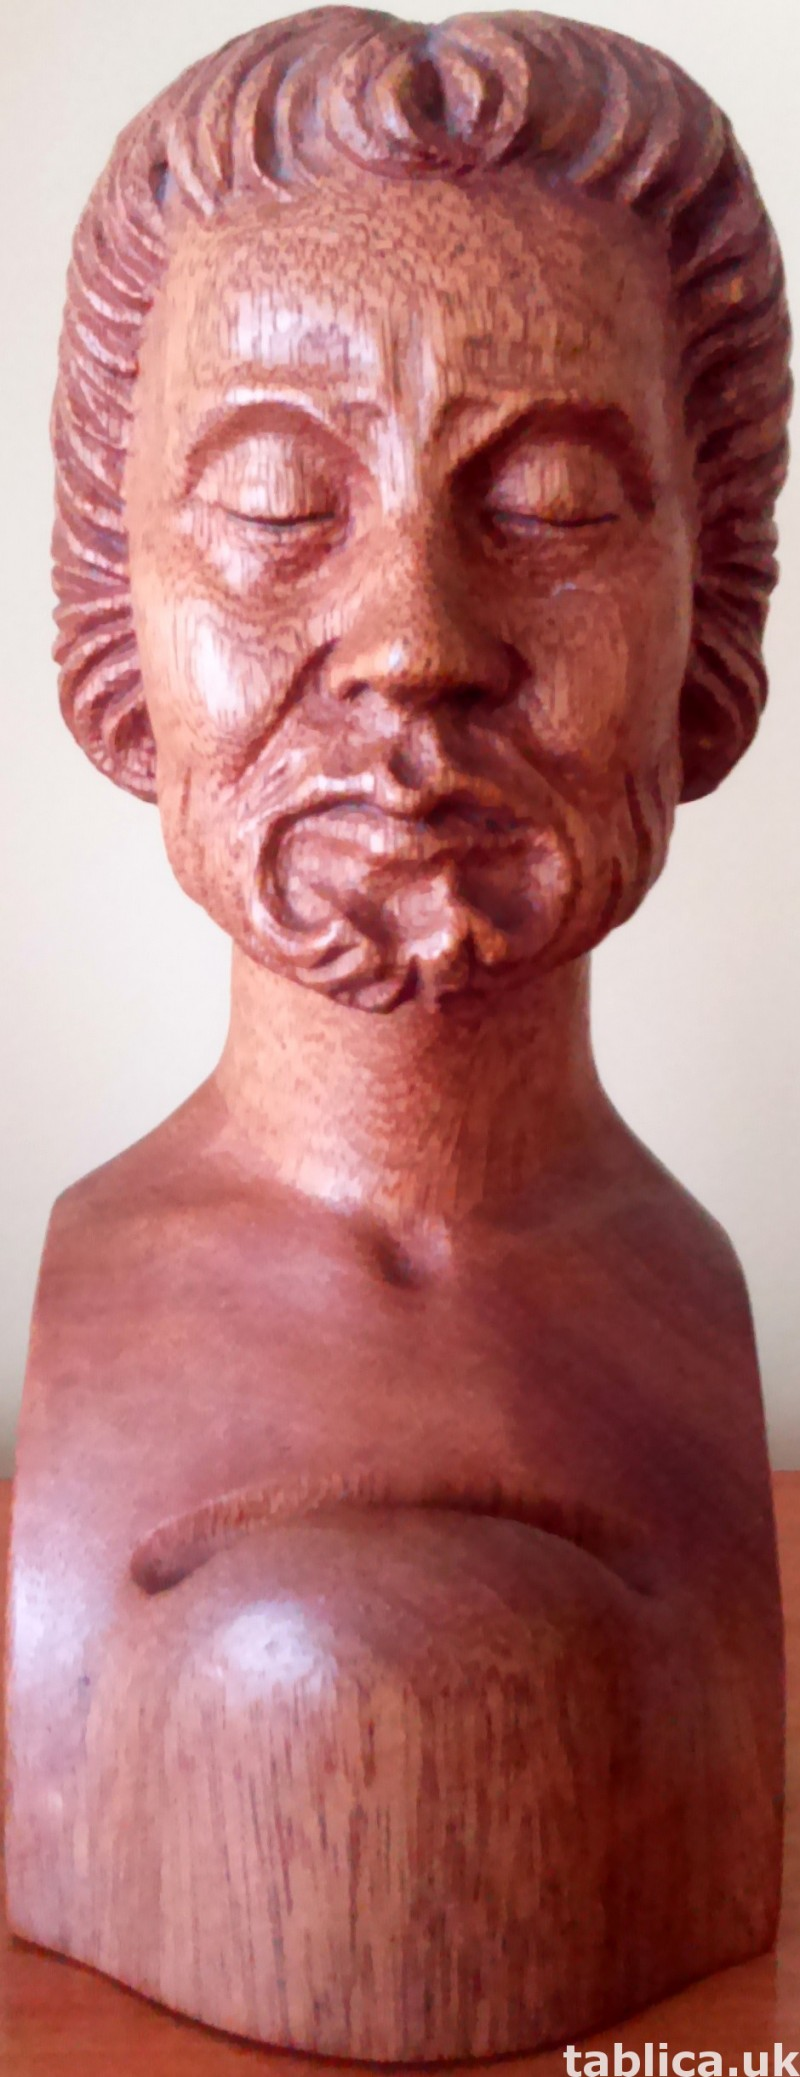 For Sale: Bust from Wood: Old Man - Solid Wood !!! 0